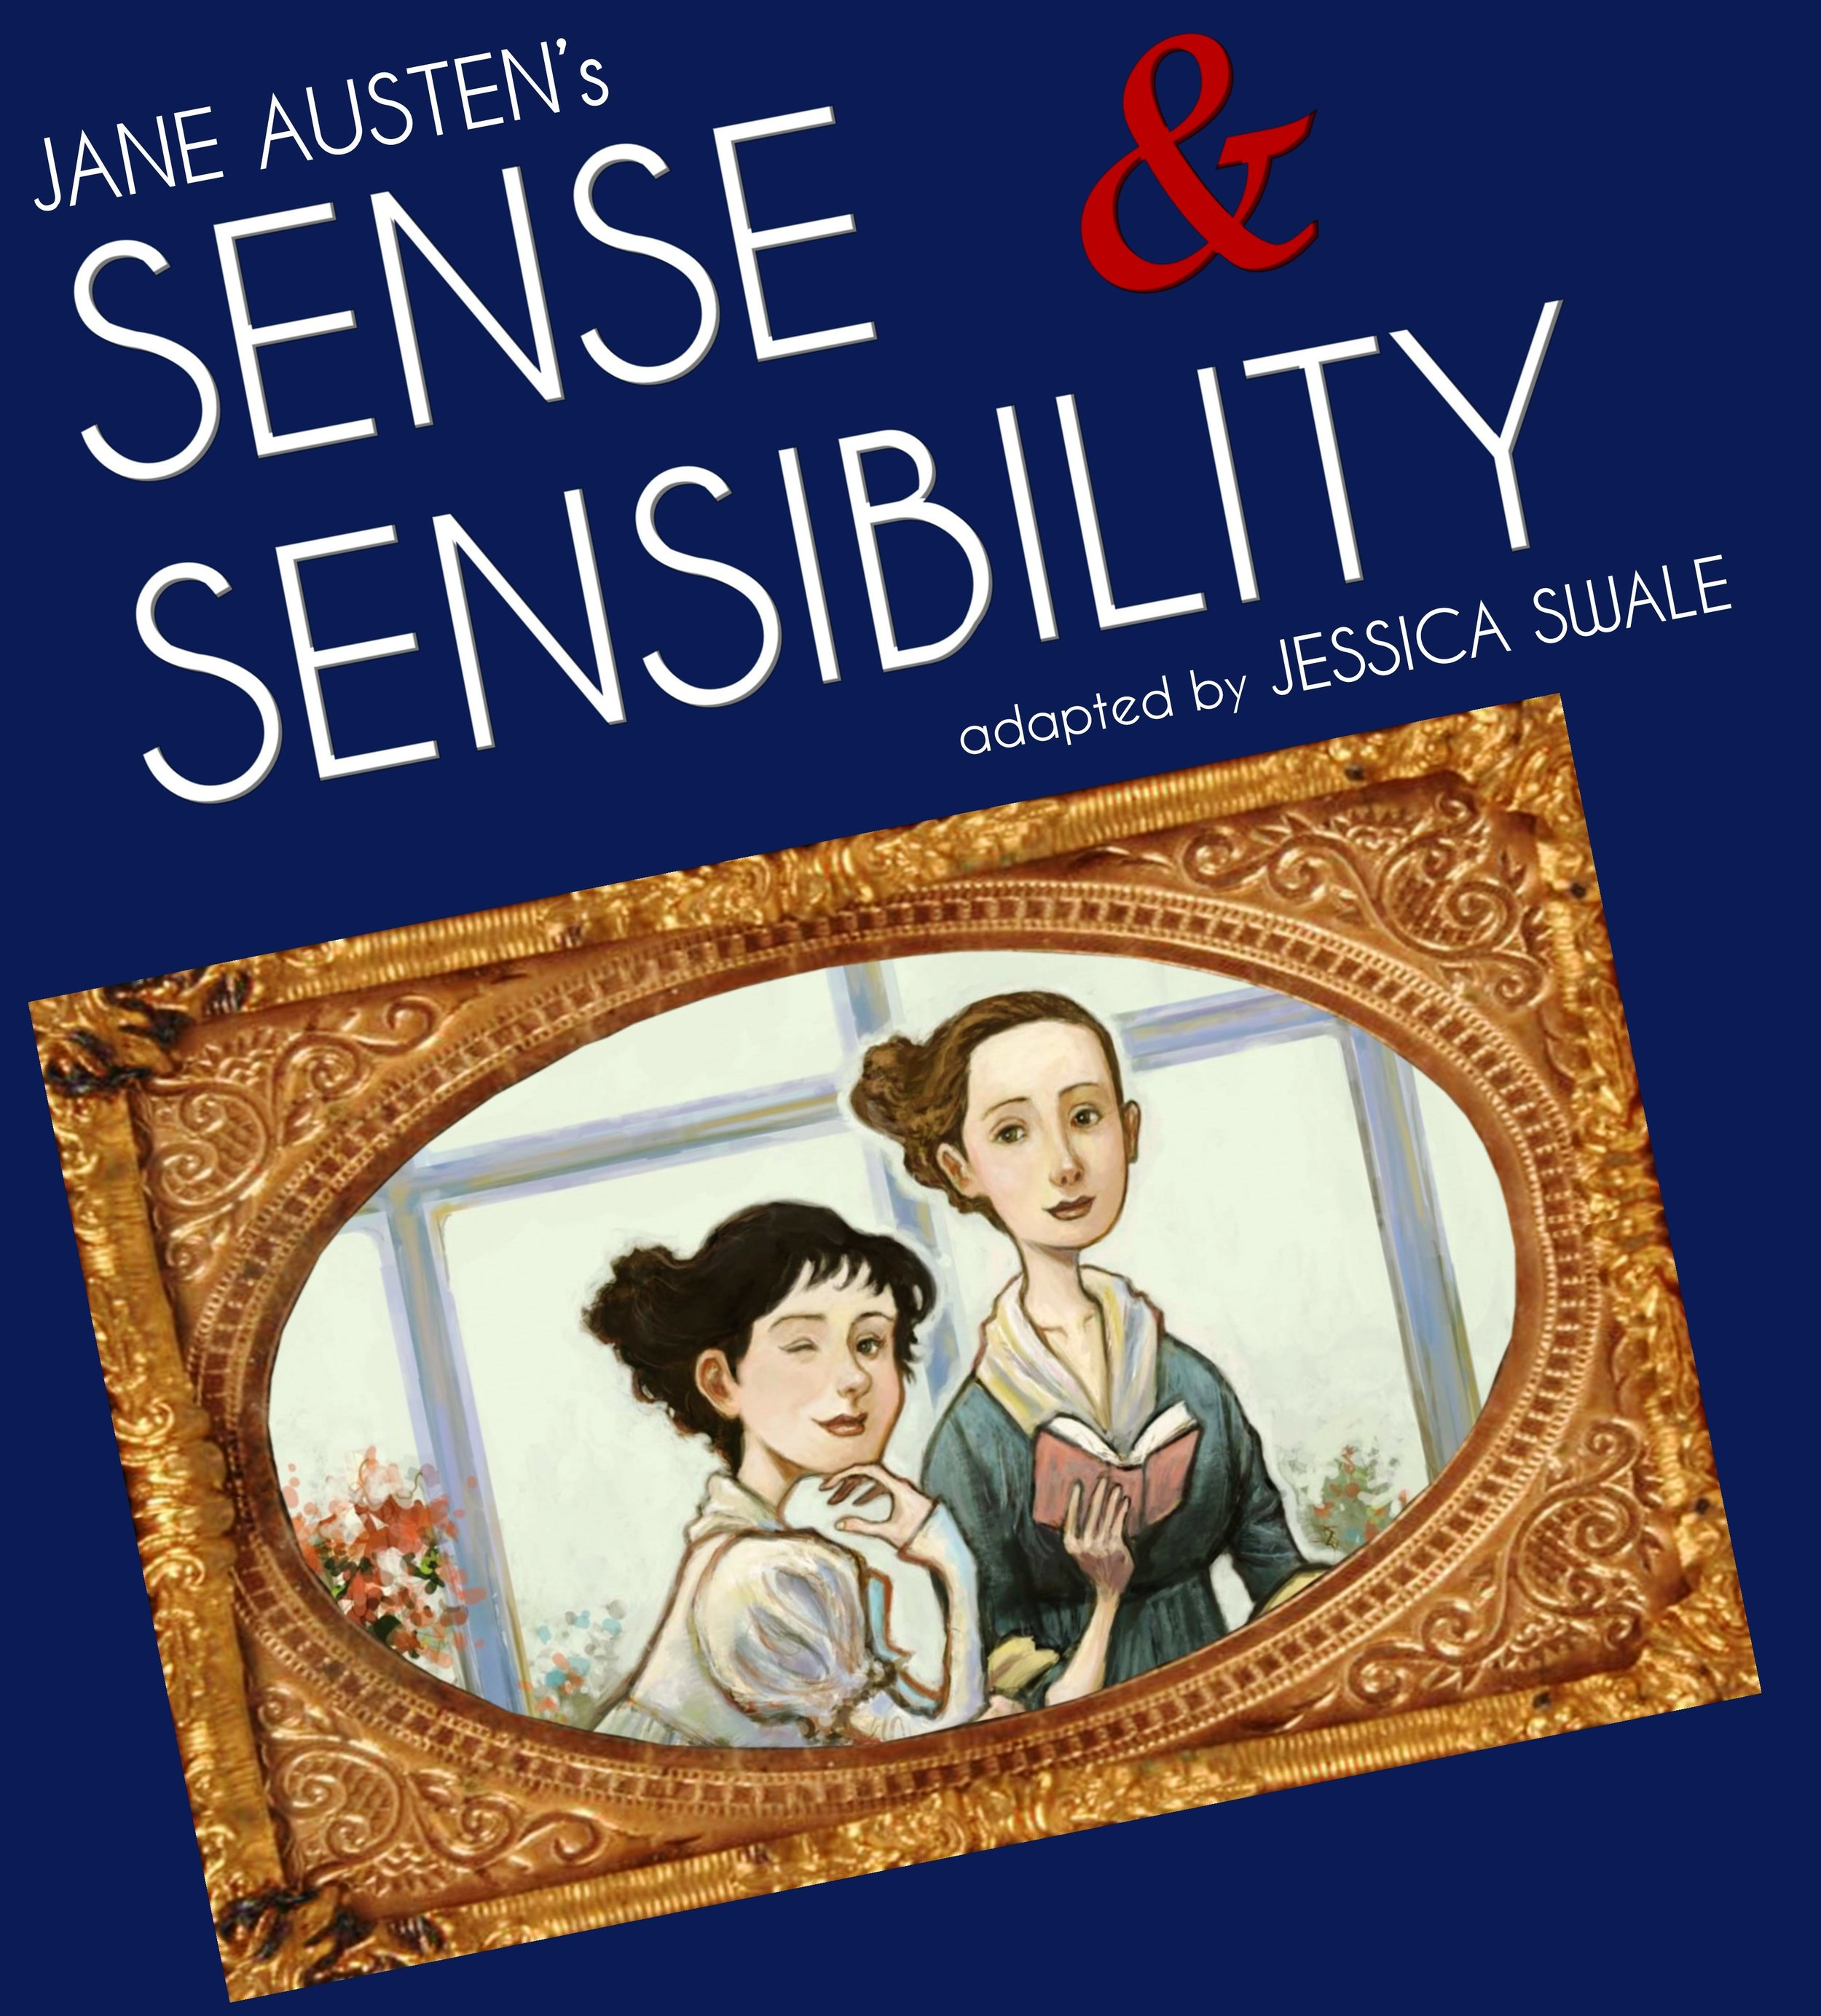 sense and sensibility web image 2.jpg